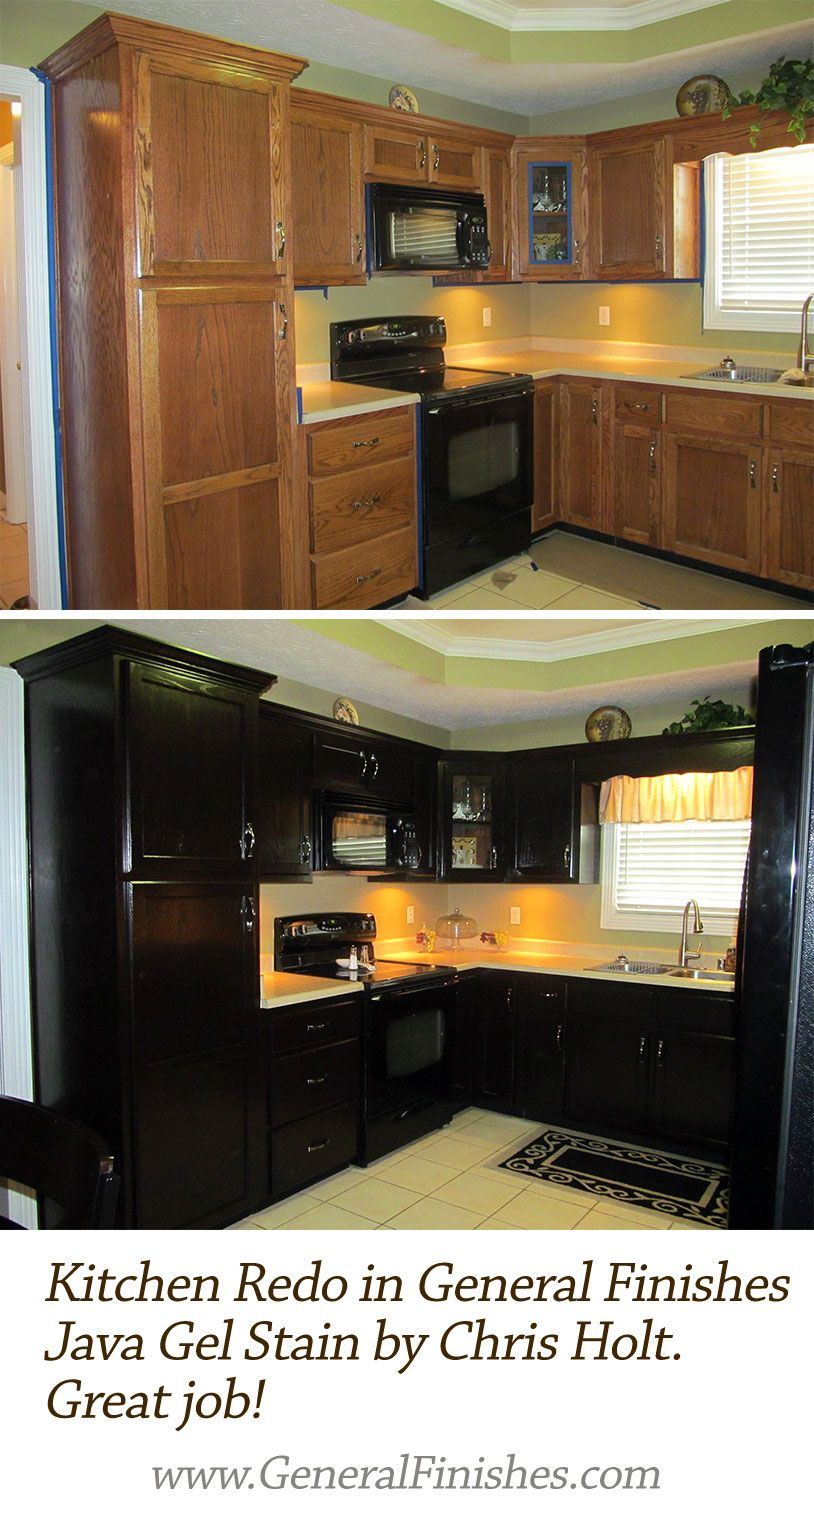 Check Out This Refinished Kitchen In Java Gel Stain Says Chris Holt Java Gel Stains Kitchen Diy Makeover Staining Cabinets